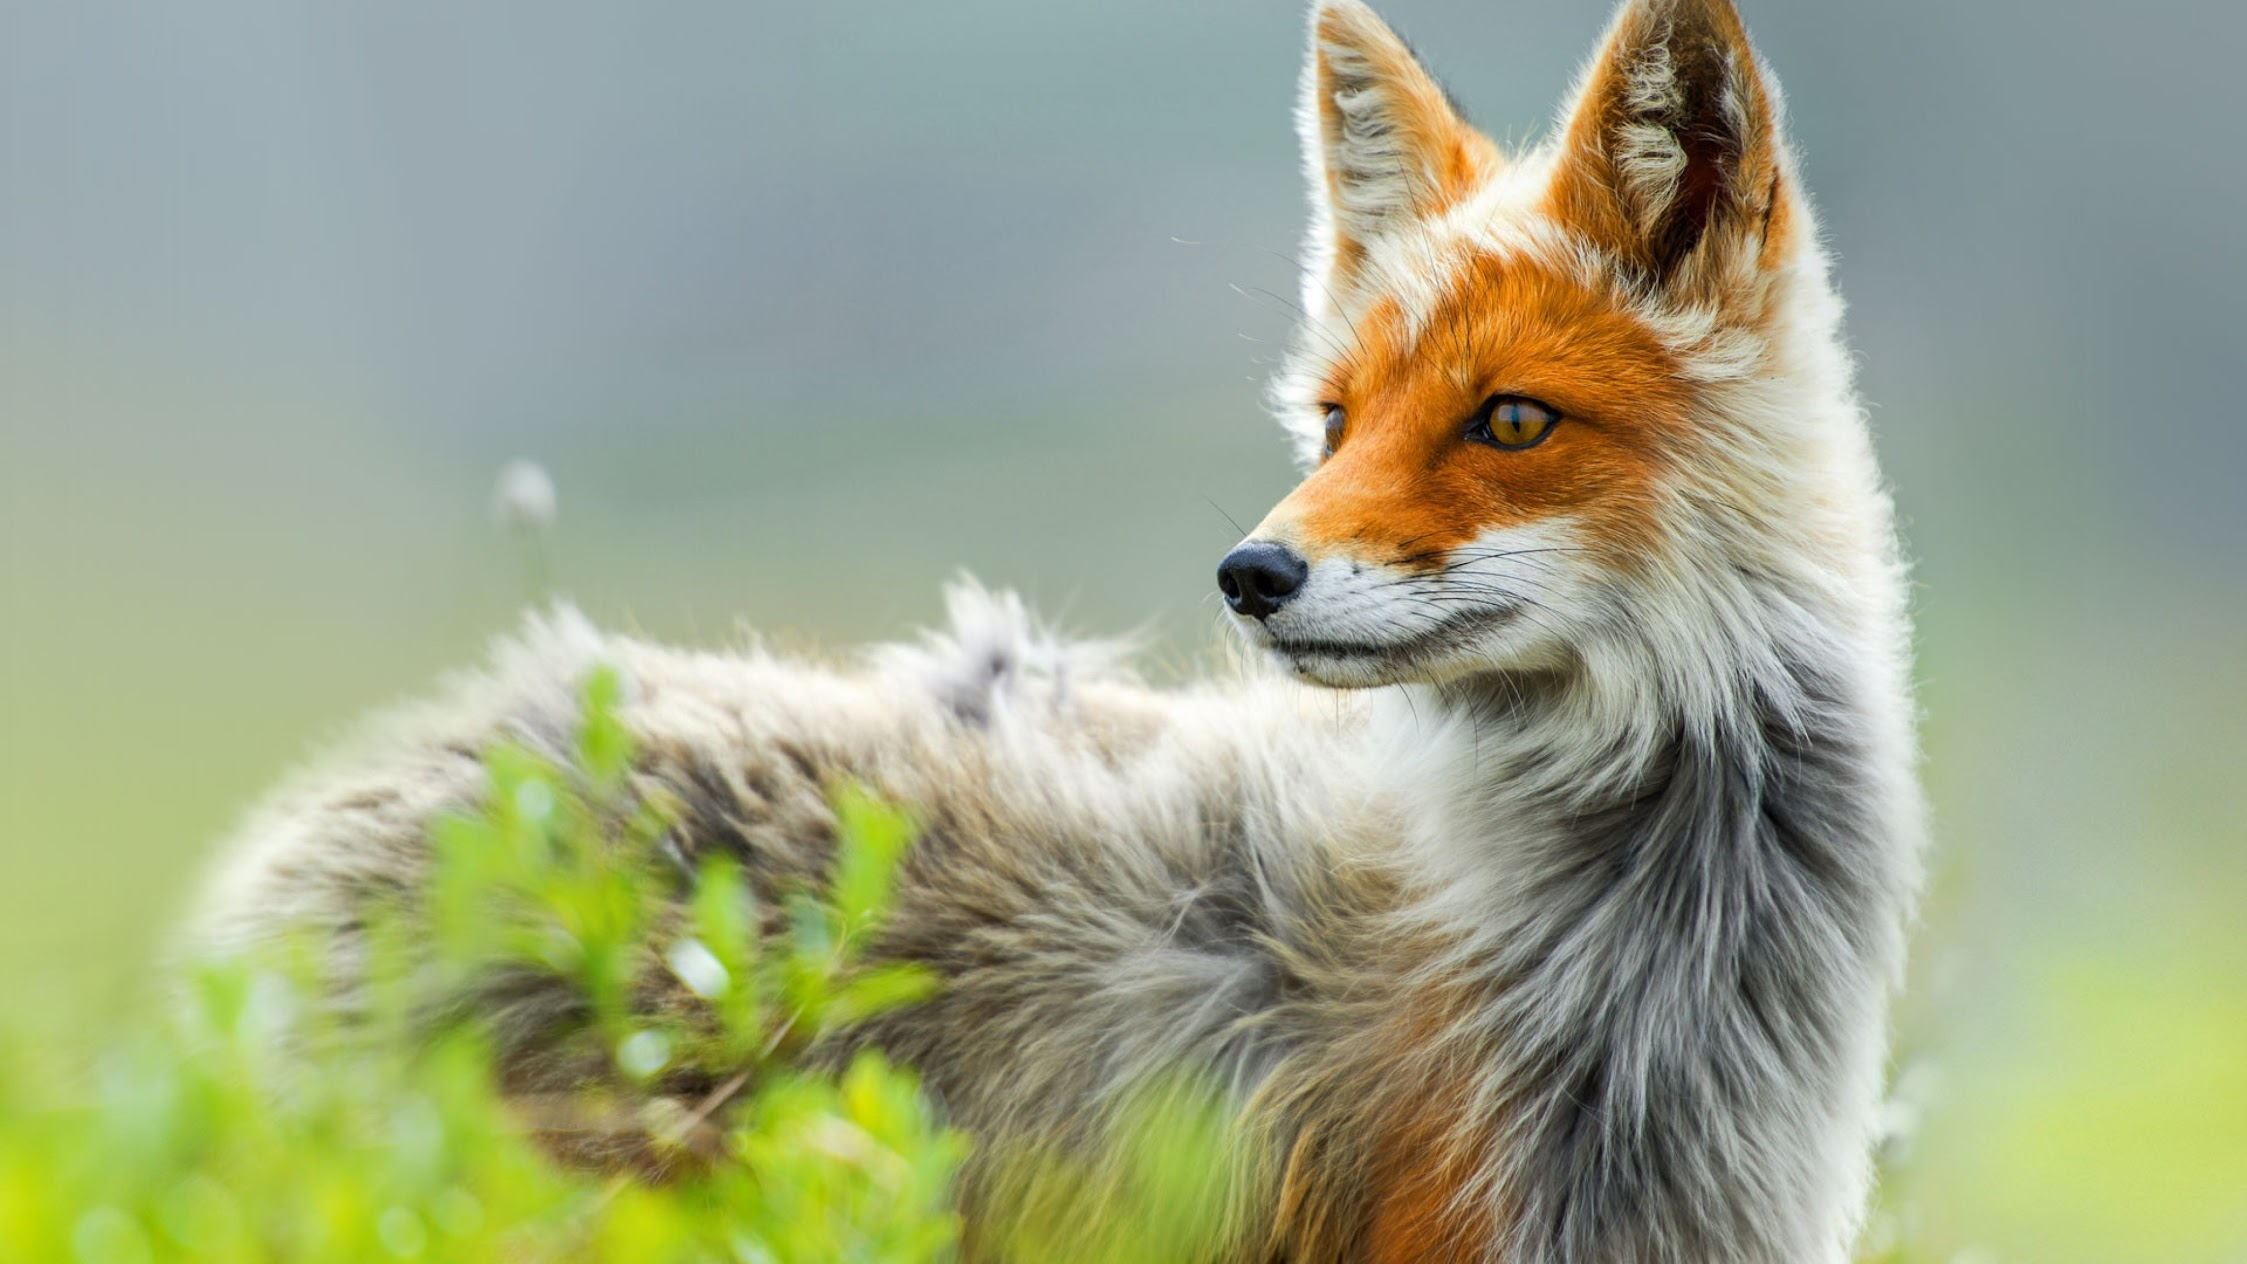 red fox hd wallpapers - photo #8